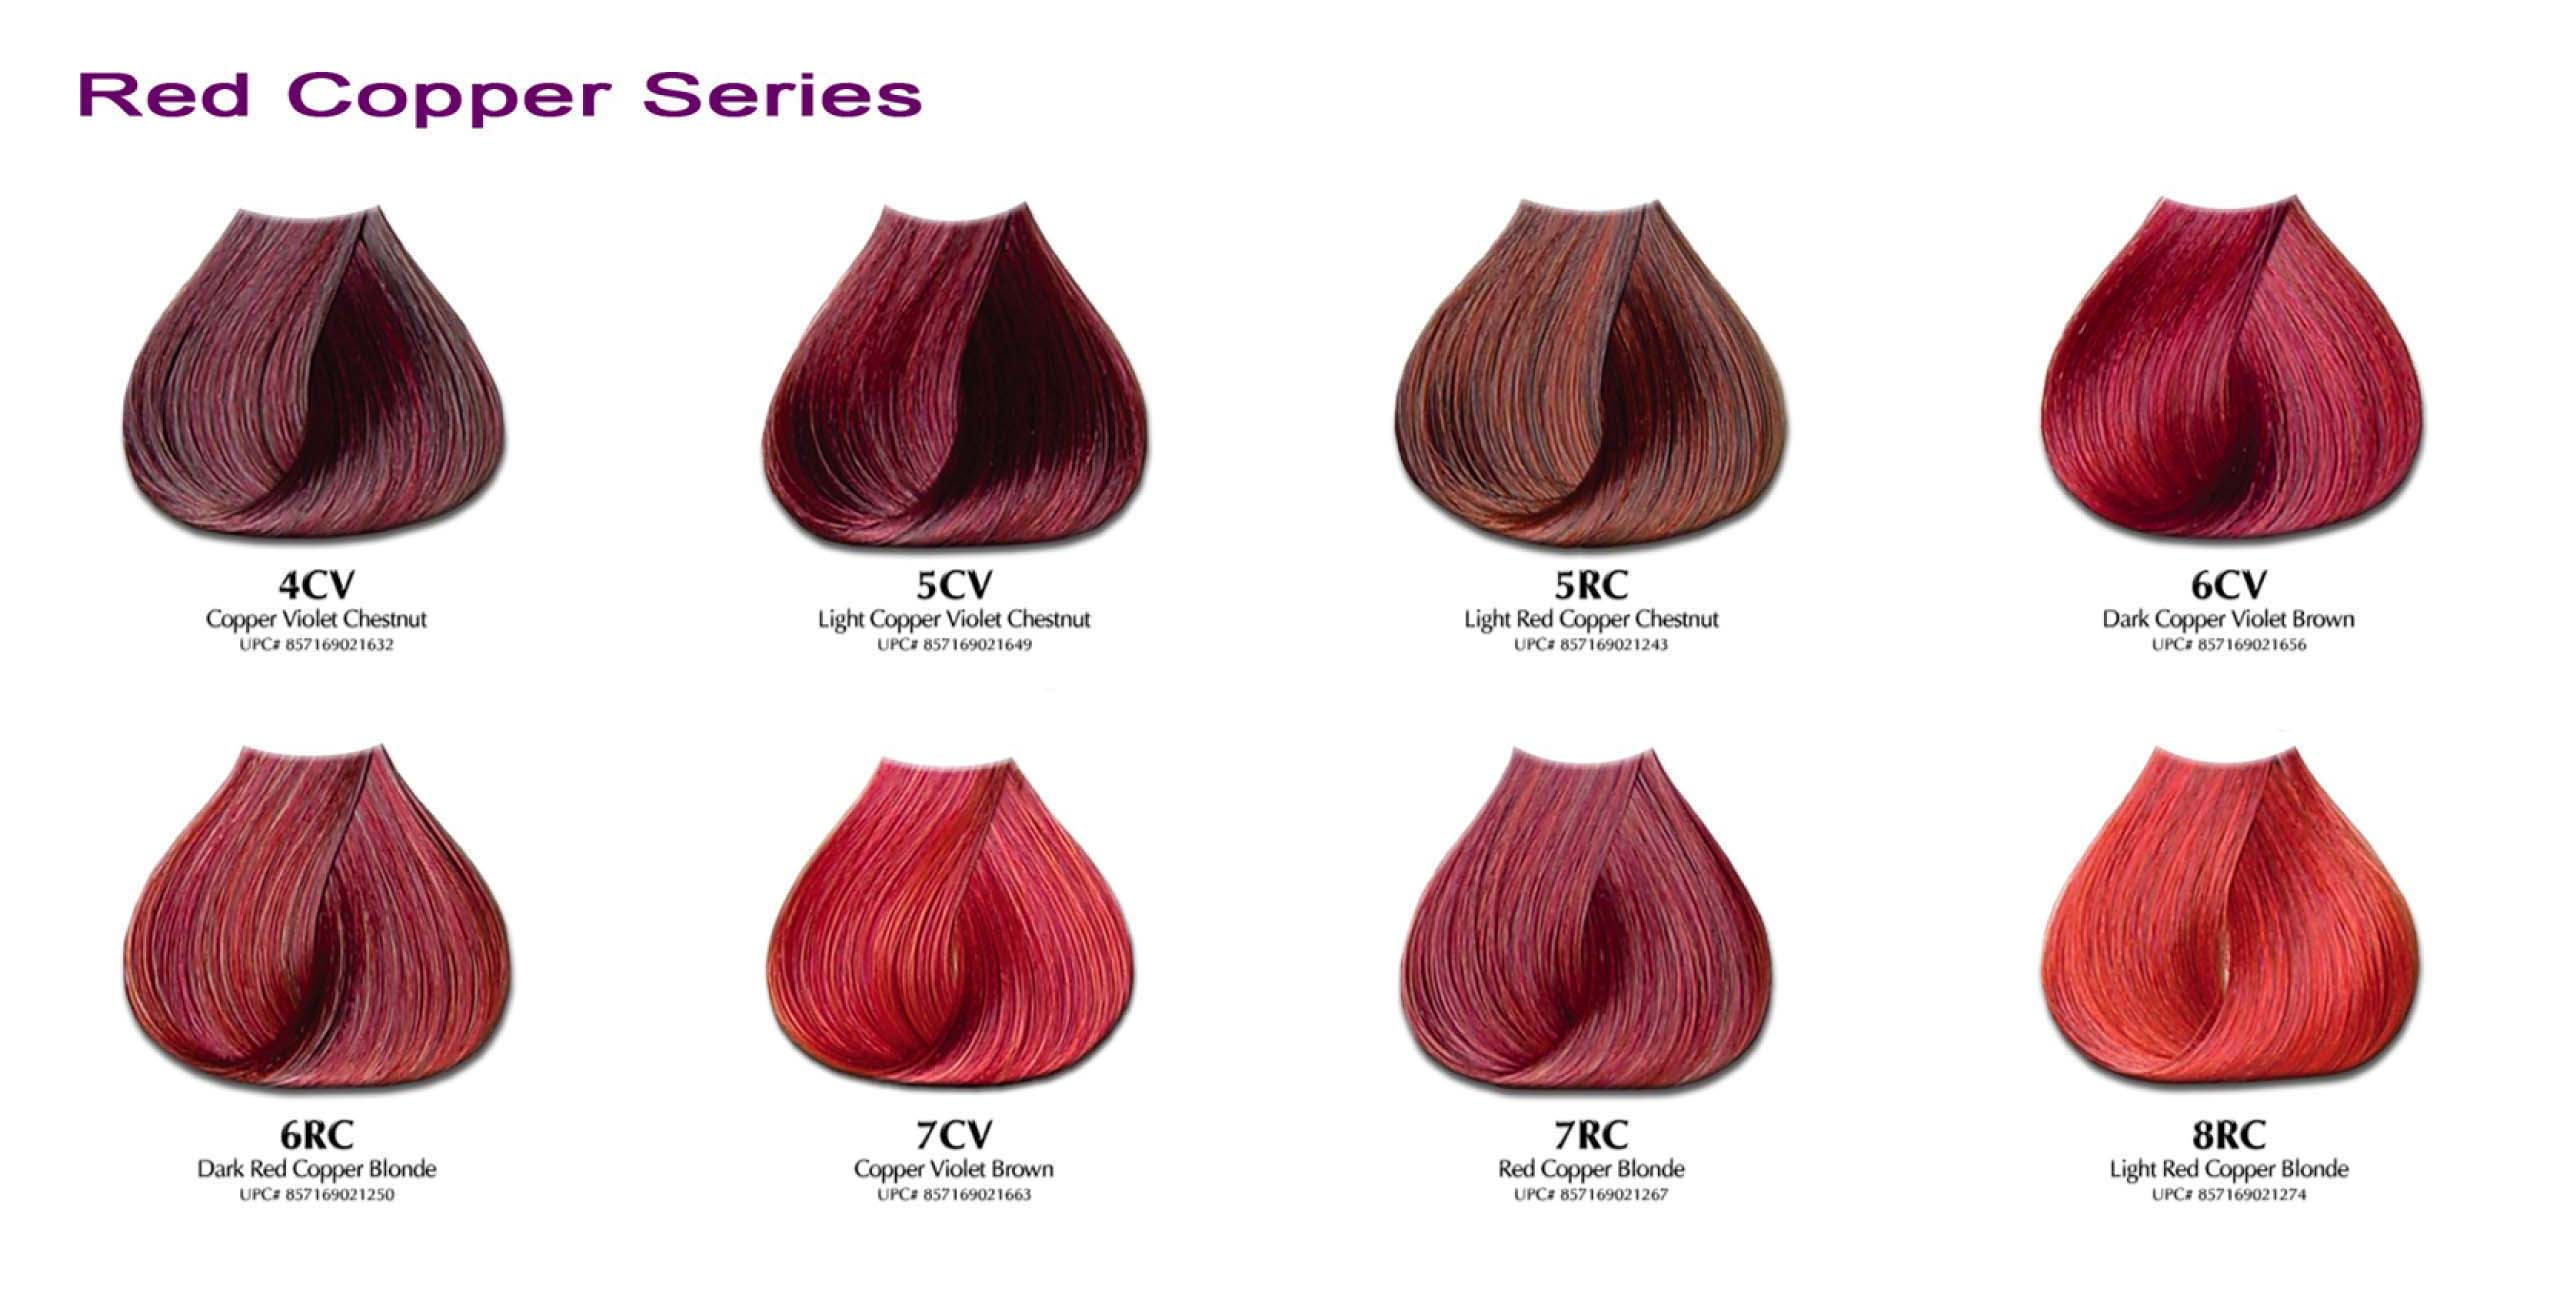 Satin hair colors buy online hair colors ysb beauty nvjuhfo Choice Image